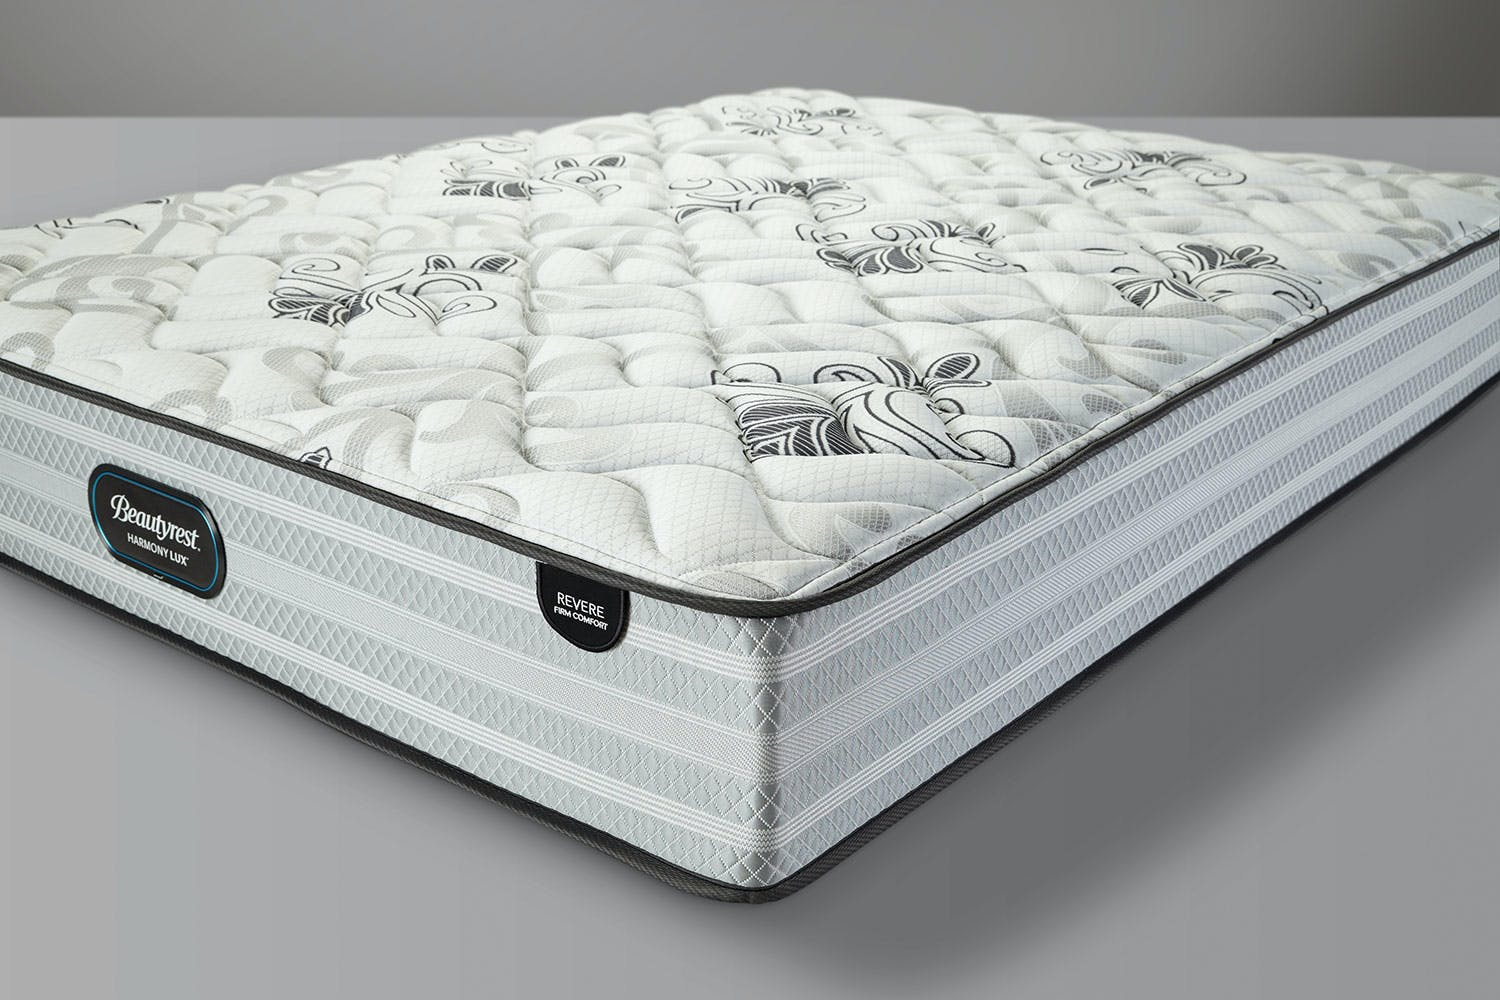 Revere Firm Queen Mattress by Beautyrest